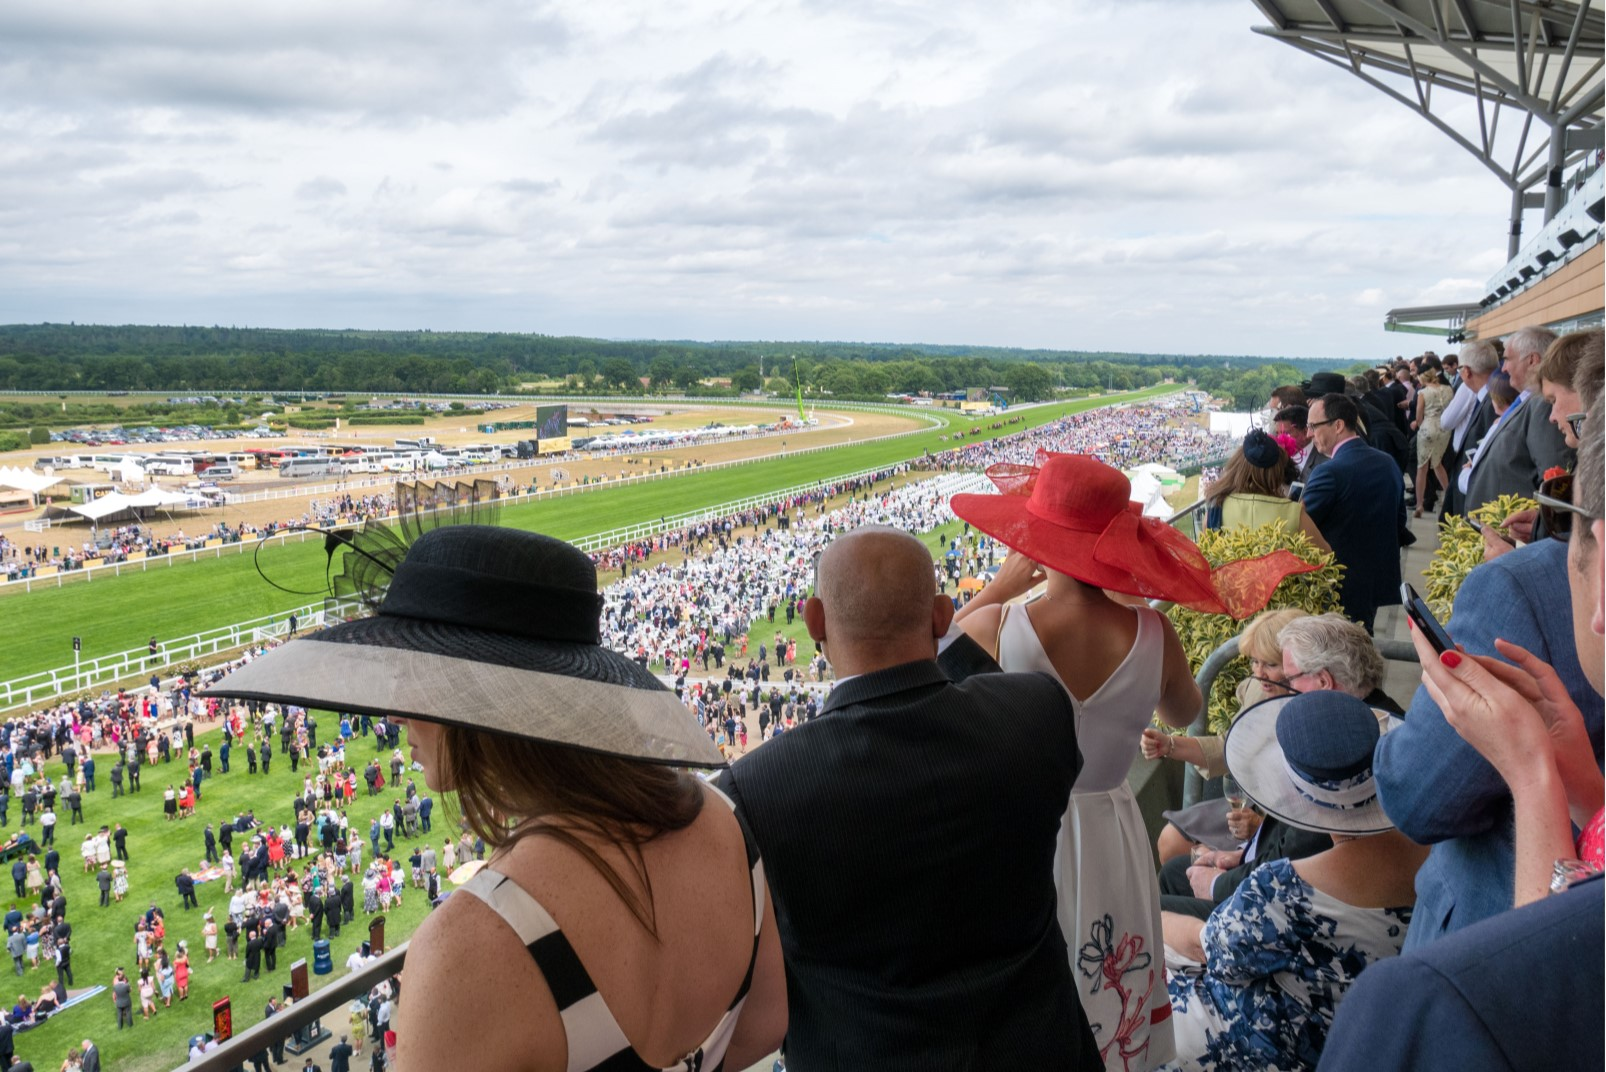 Royal Ascot 2015, photo courtesy of ReflectedSerendipity/flickr.com